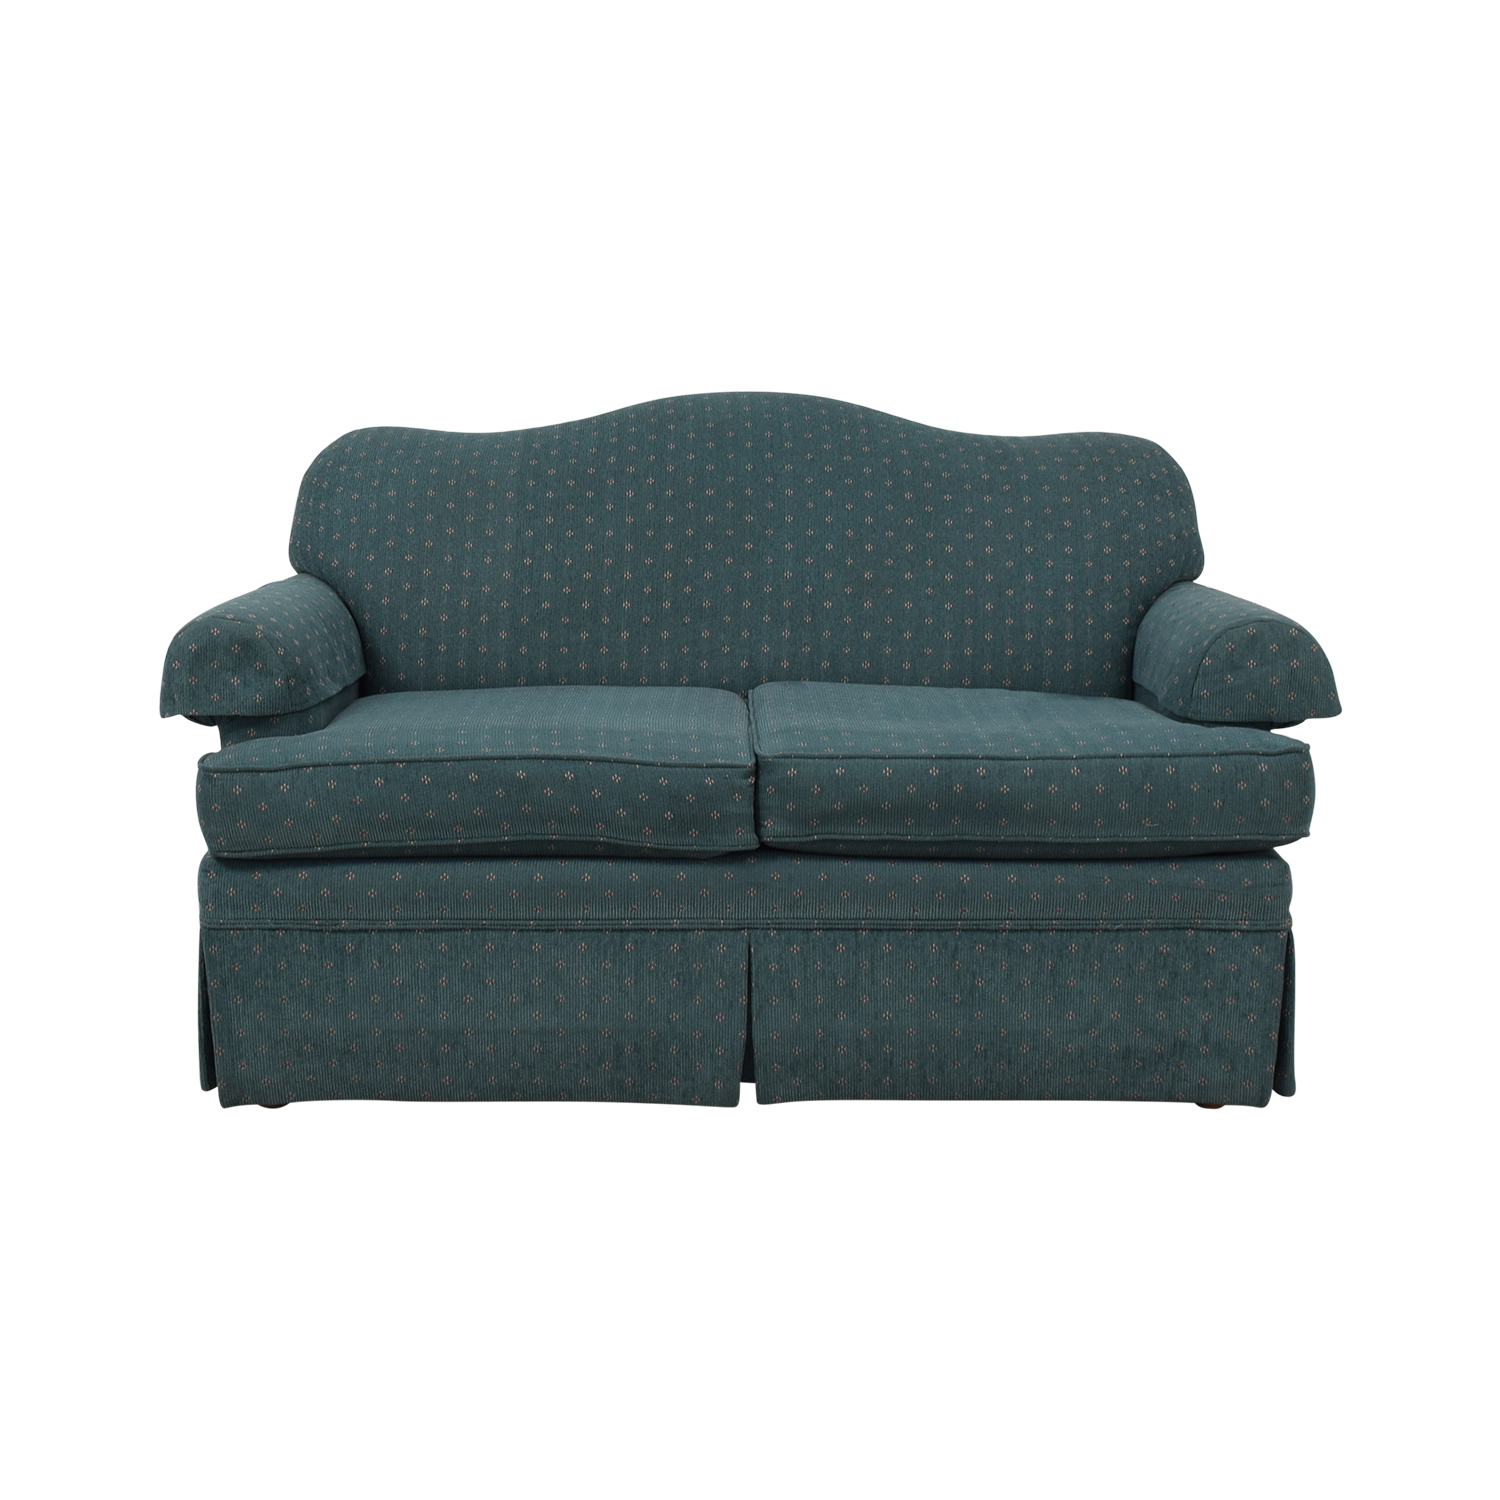 buy La-Z-Boy La-Z-Boy Patterned Loveseat online